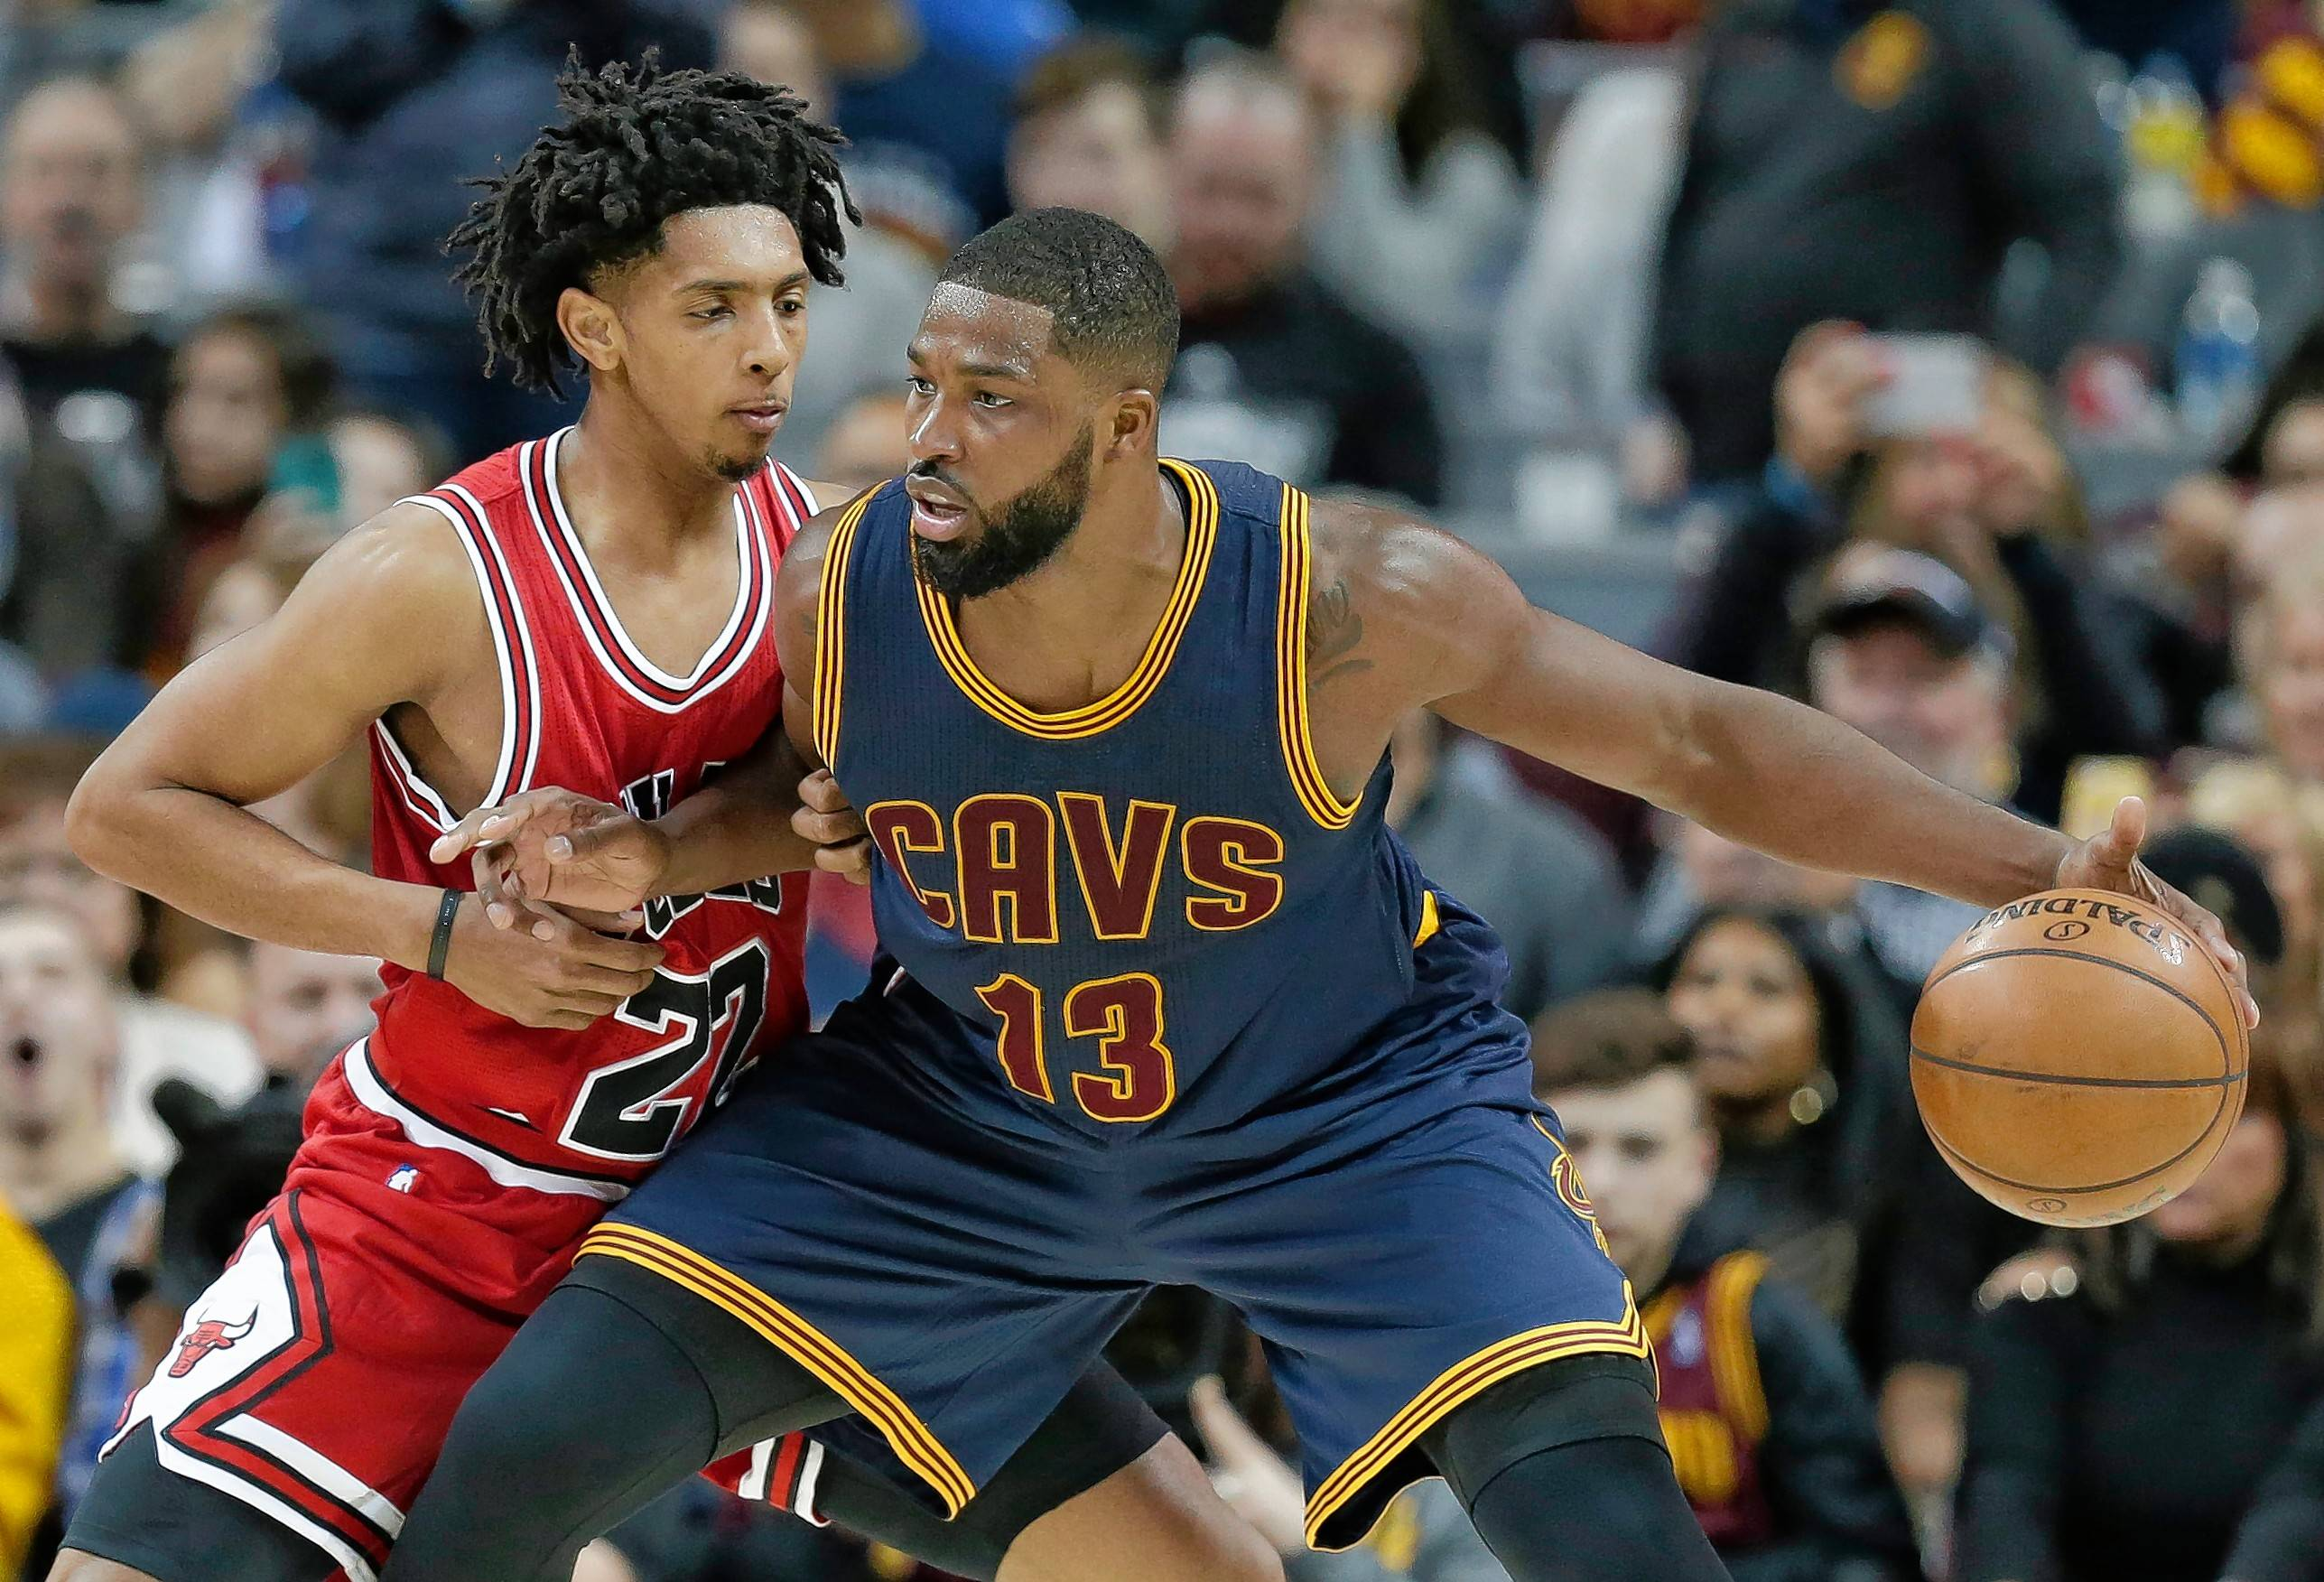 Chicago Bulls send Payne on D-League assignment